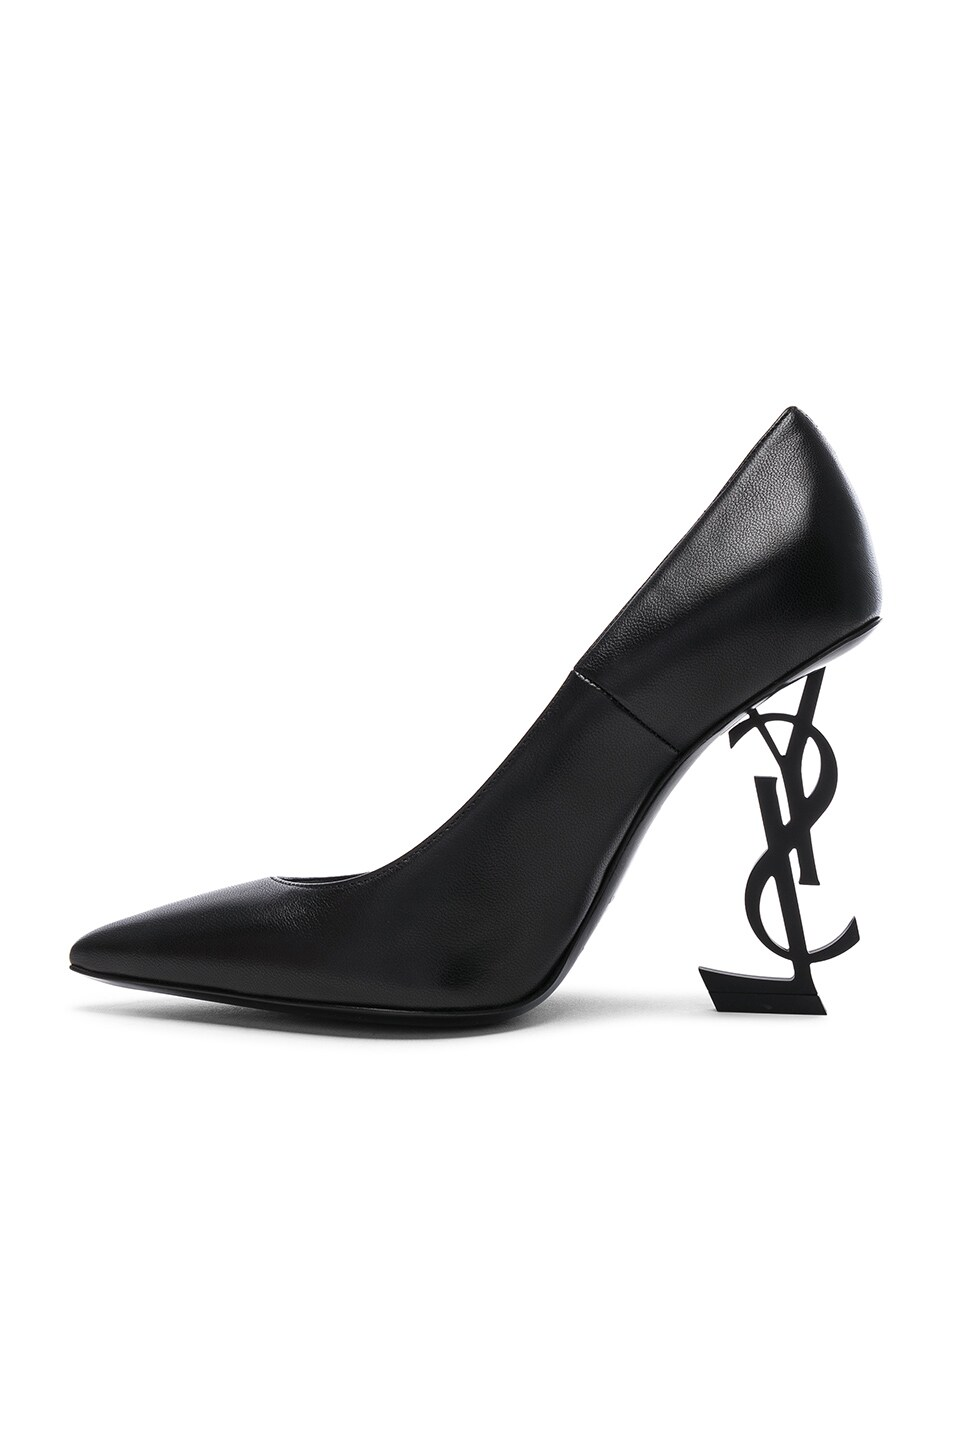 Image 5 of Saint Laurent Opium Leather Monogramme Heels in Black & Black